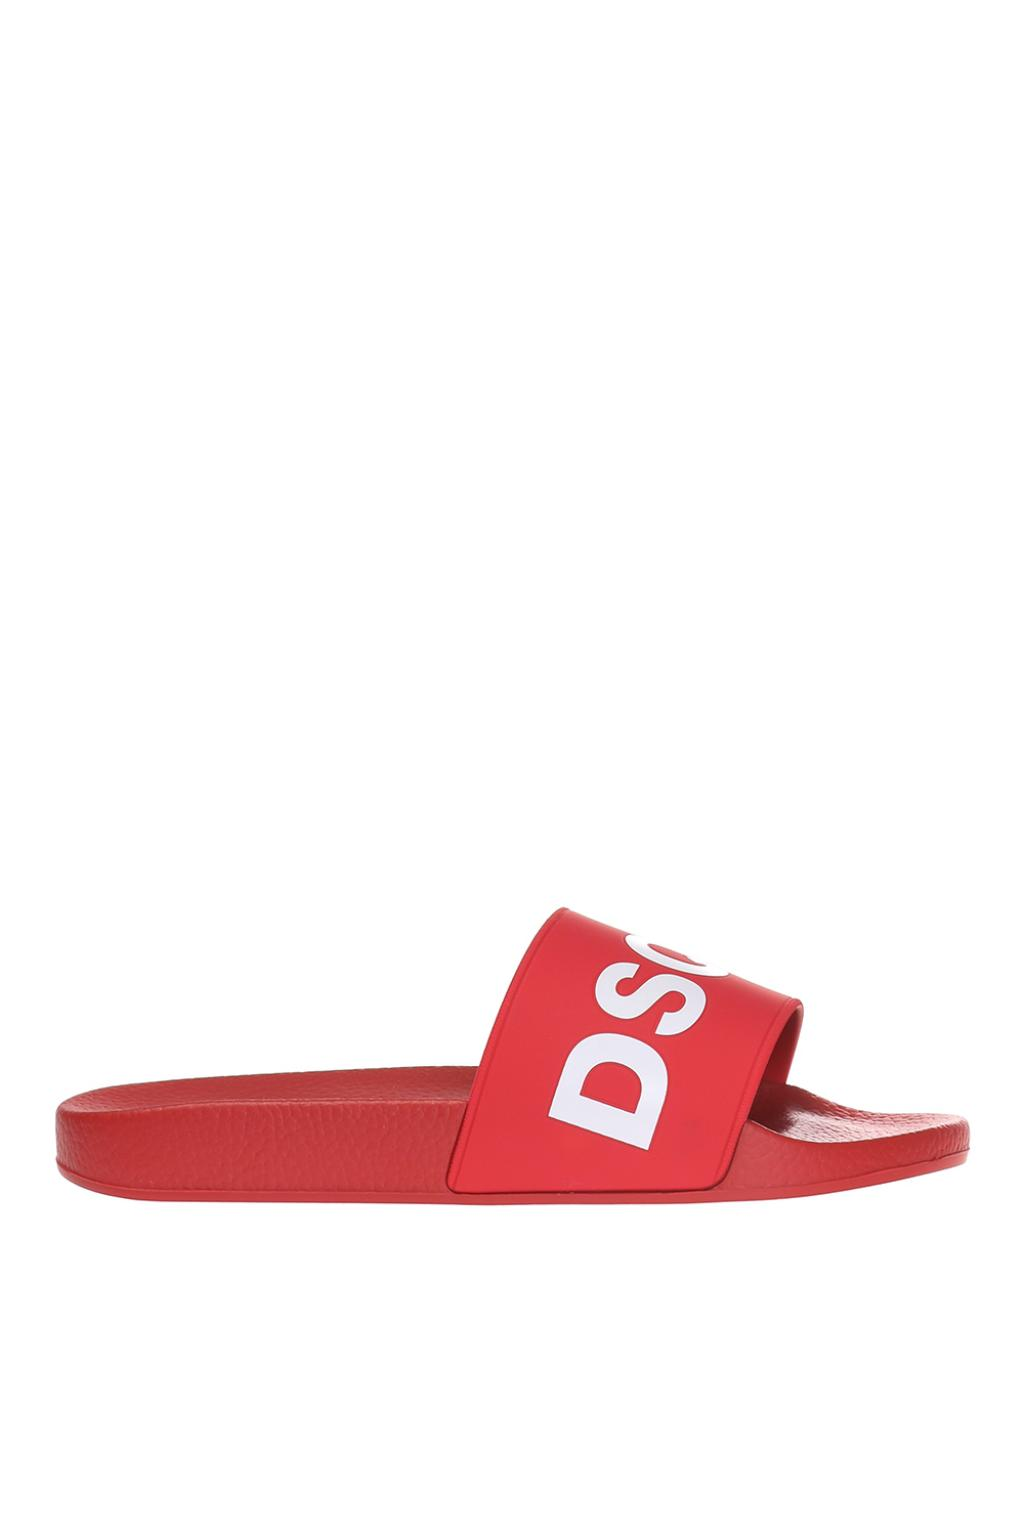 Dsquared2 Slippers with a logo